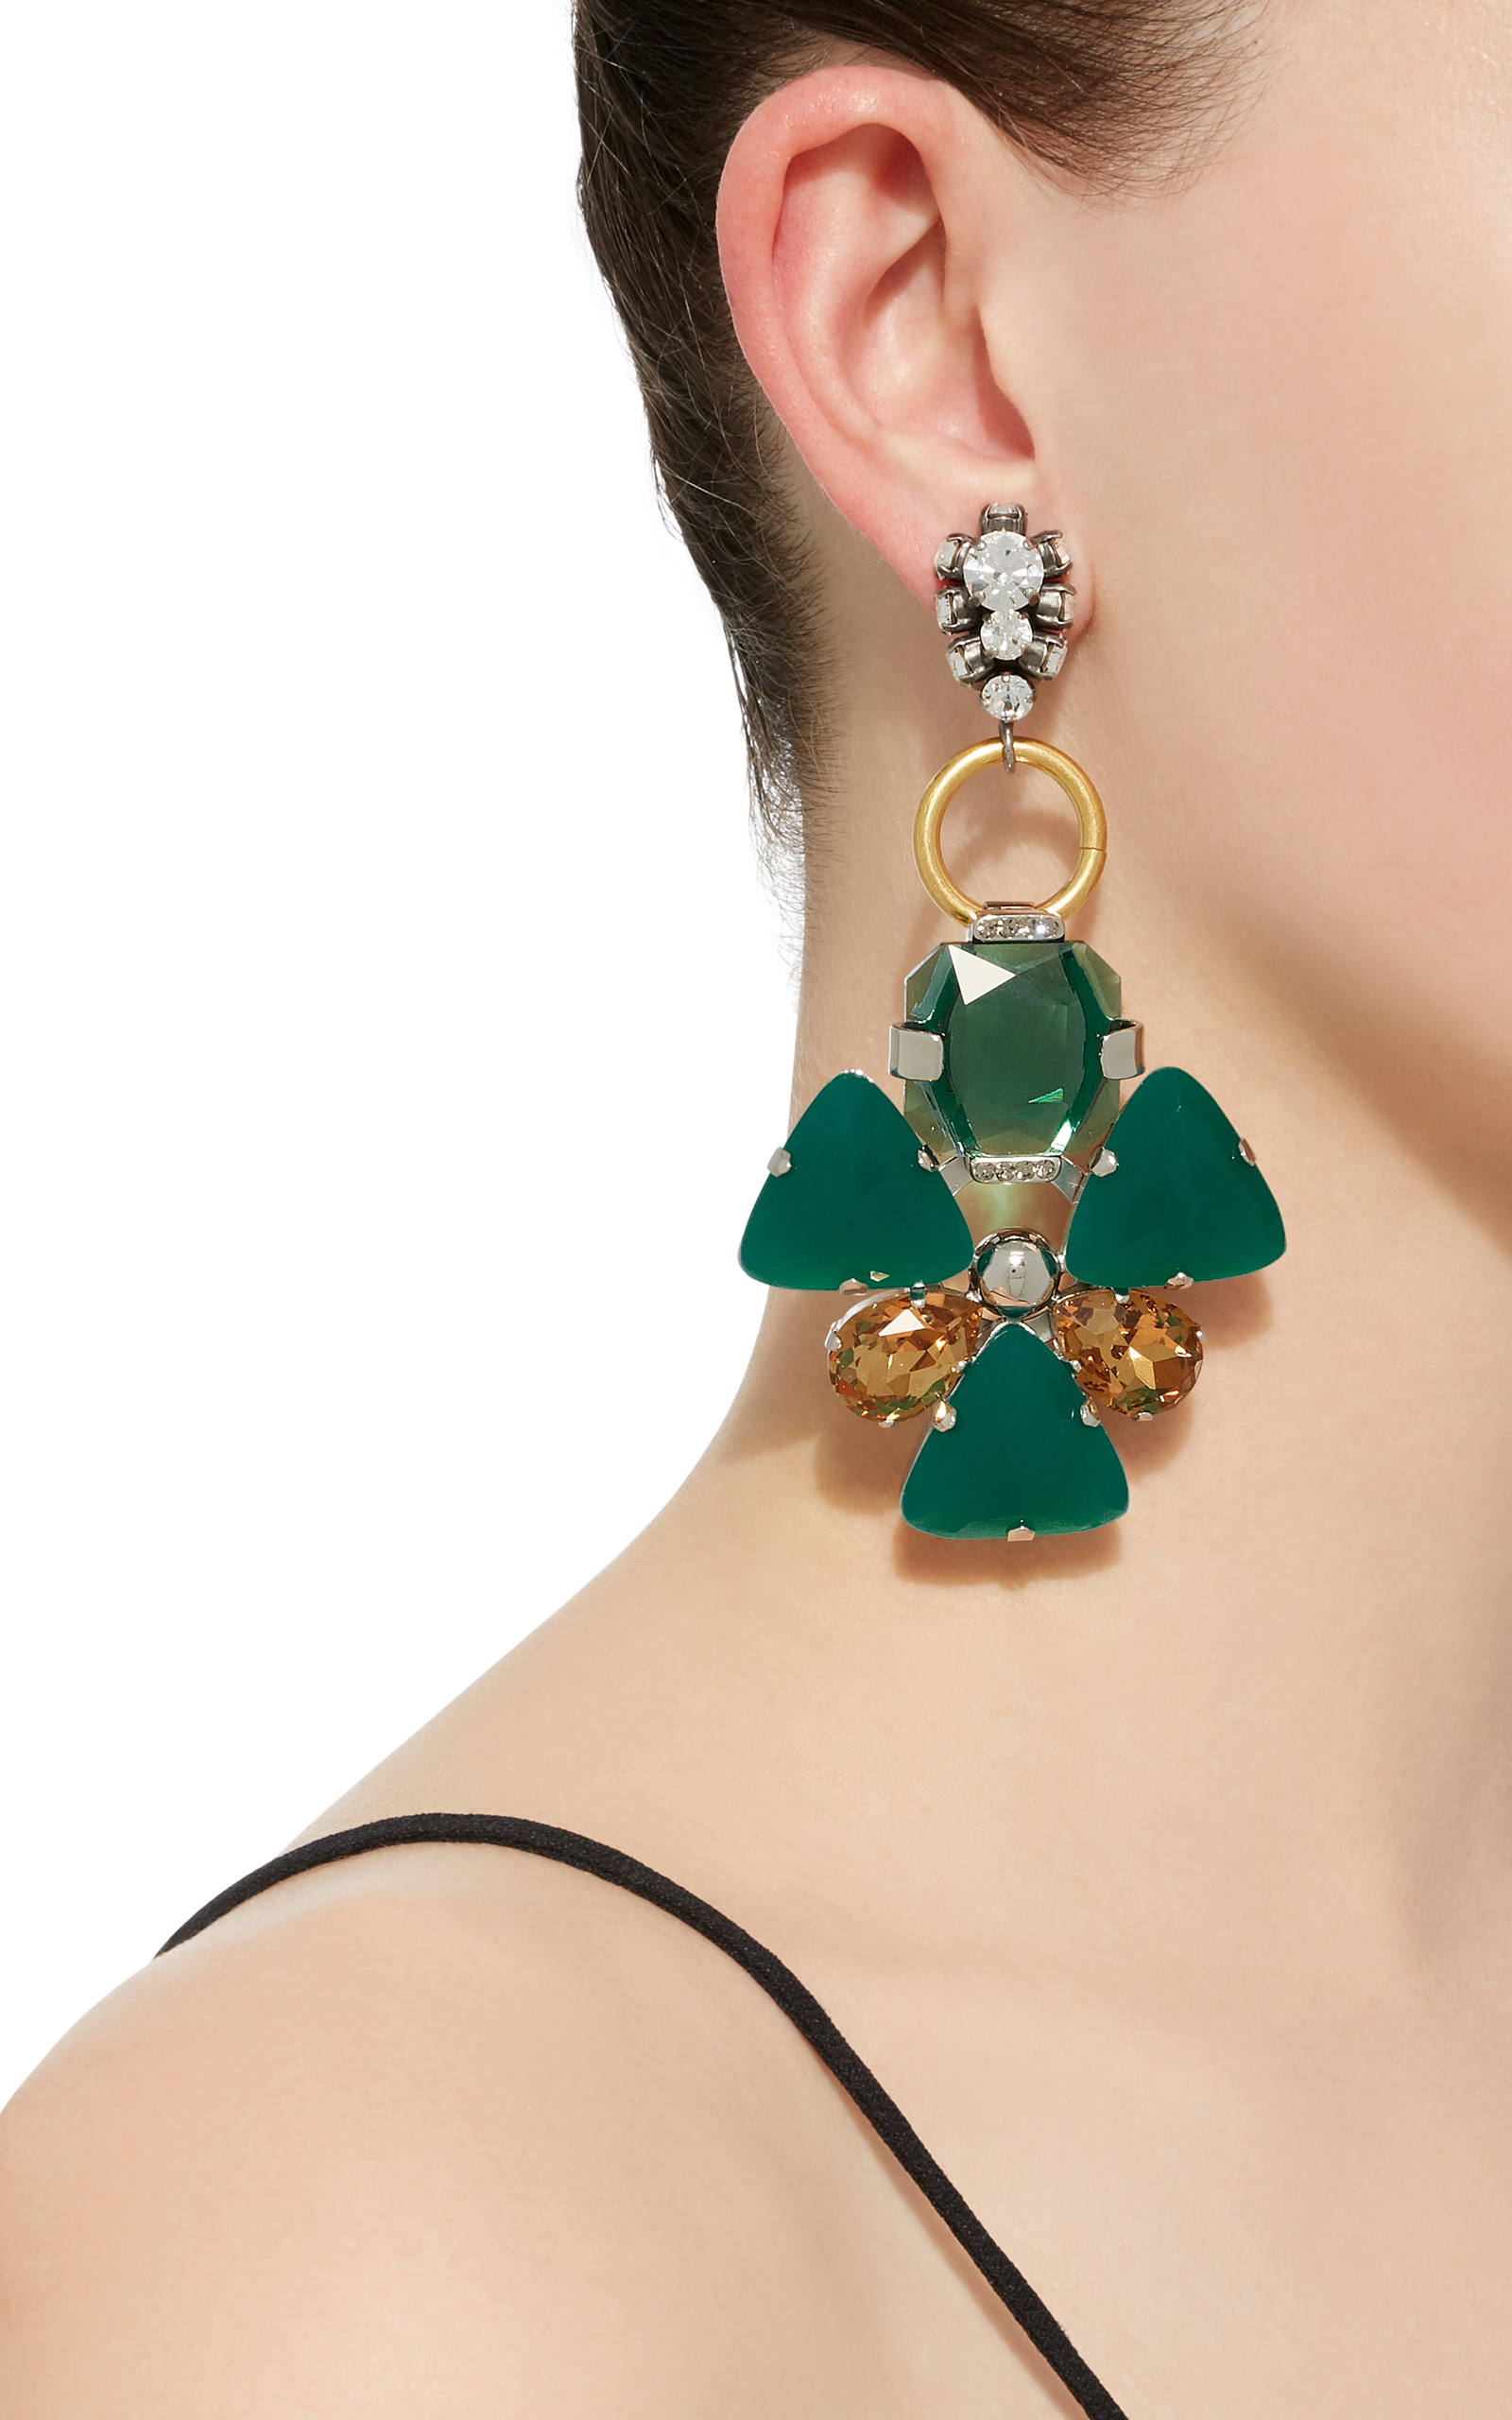 ensemble to asymmetric that any will of earrings wear geometric uk shweitzer what fashion pairs elevate best